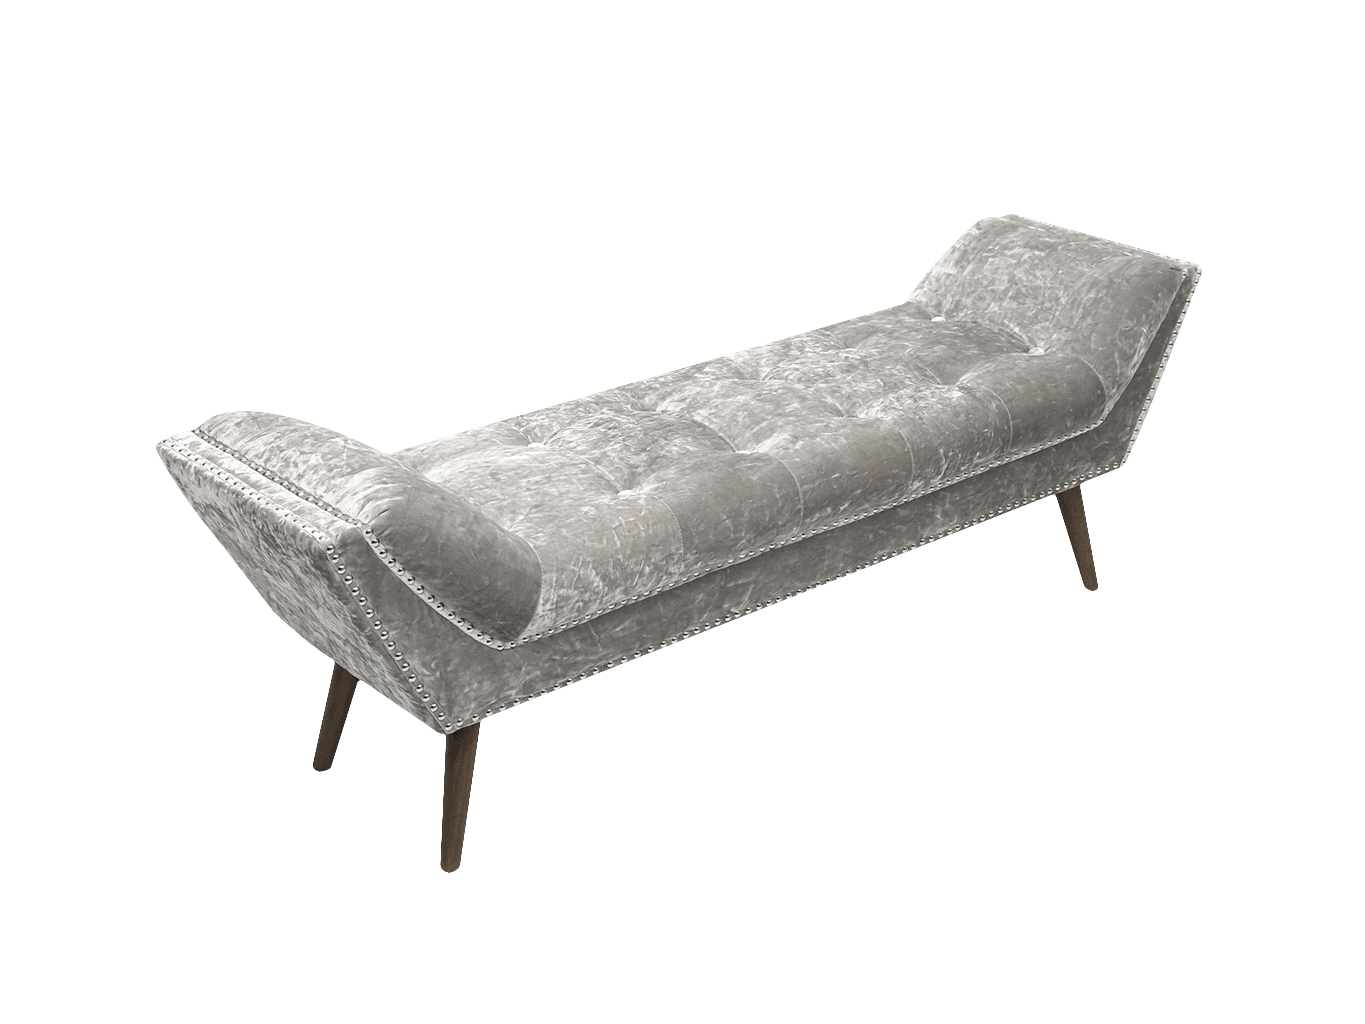 Chaise longue in crushed velvet silver finish with studs